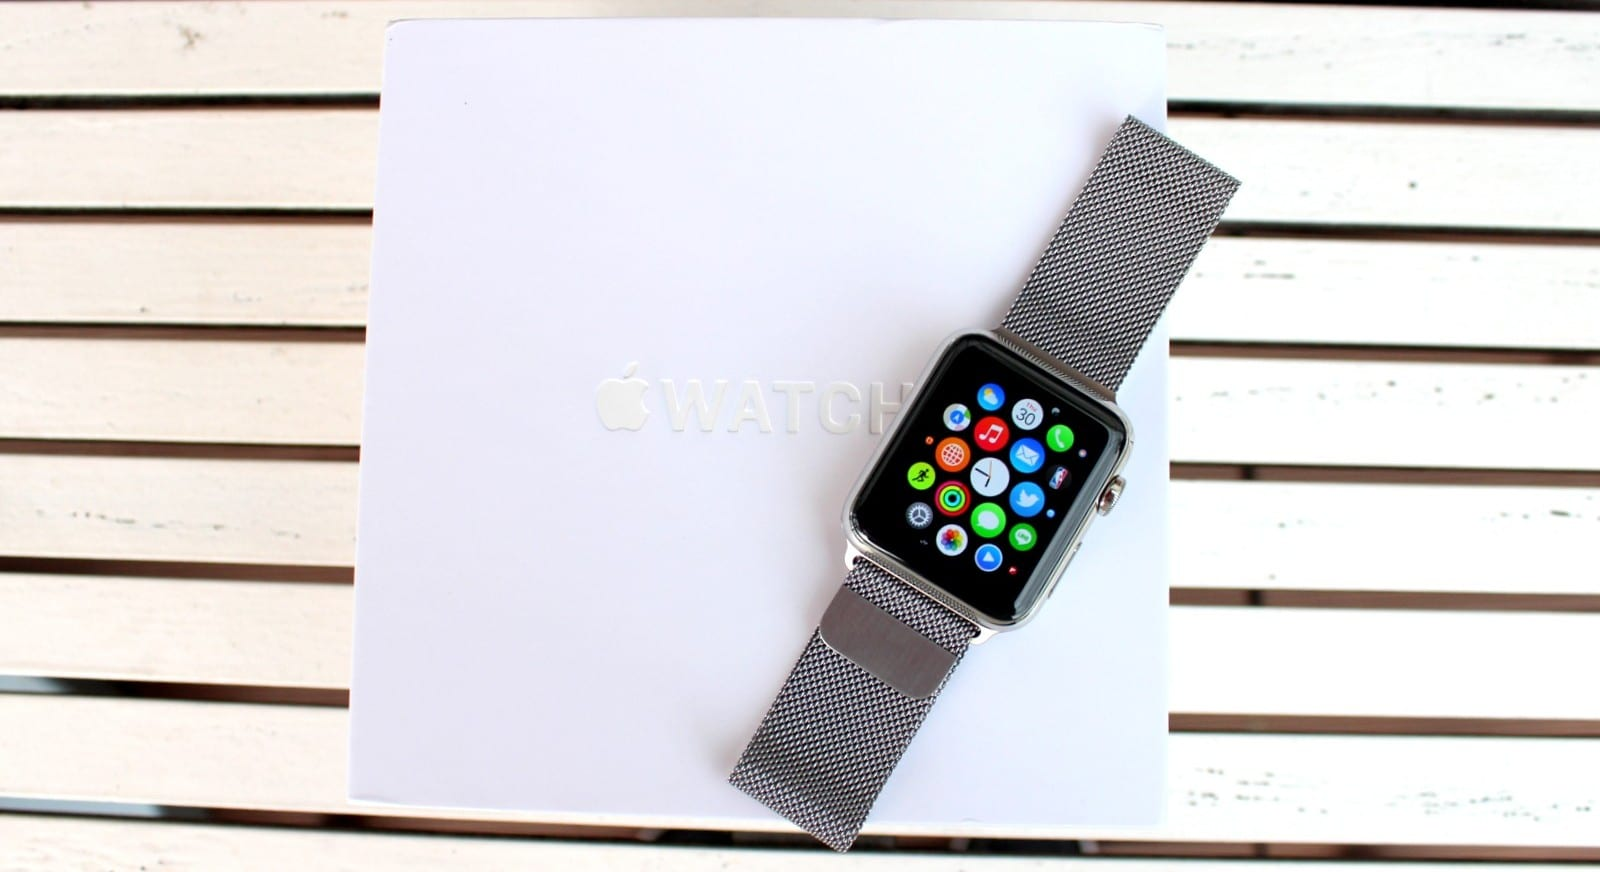 macthai-review-apple-watch-with-milanese-loop-028